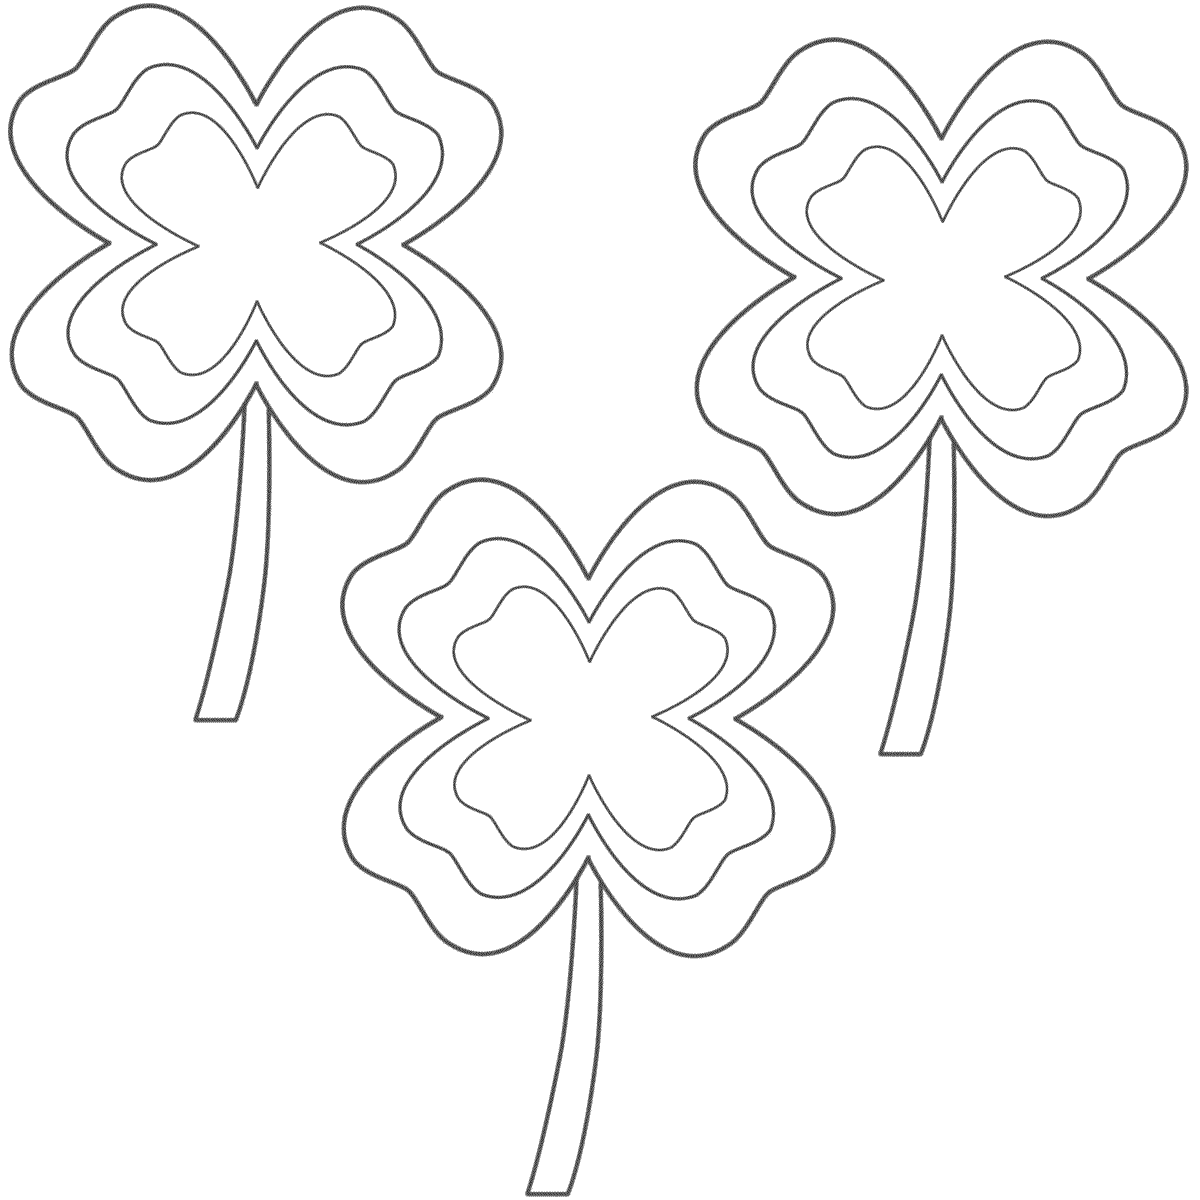 Four Leaf Clover Clip Art At Clkercom Vector Online Sketch